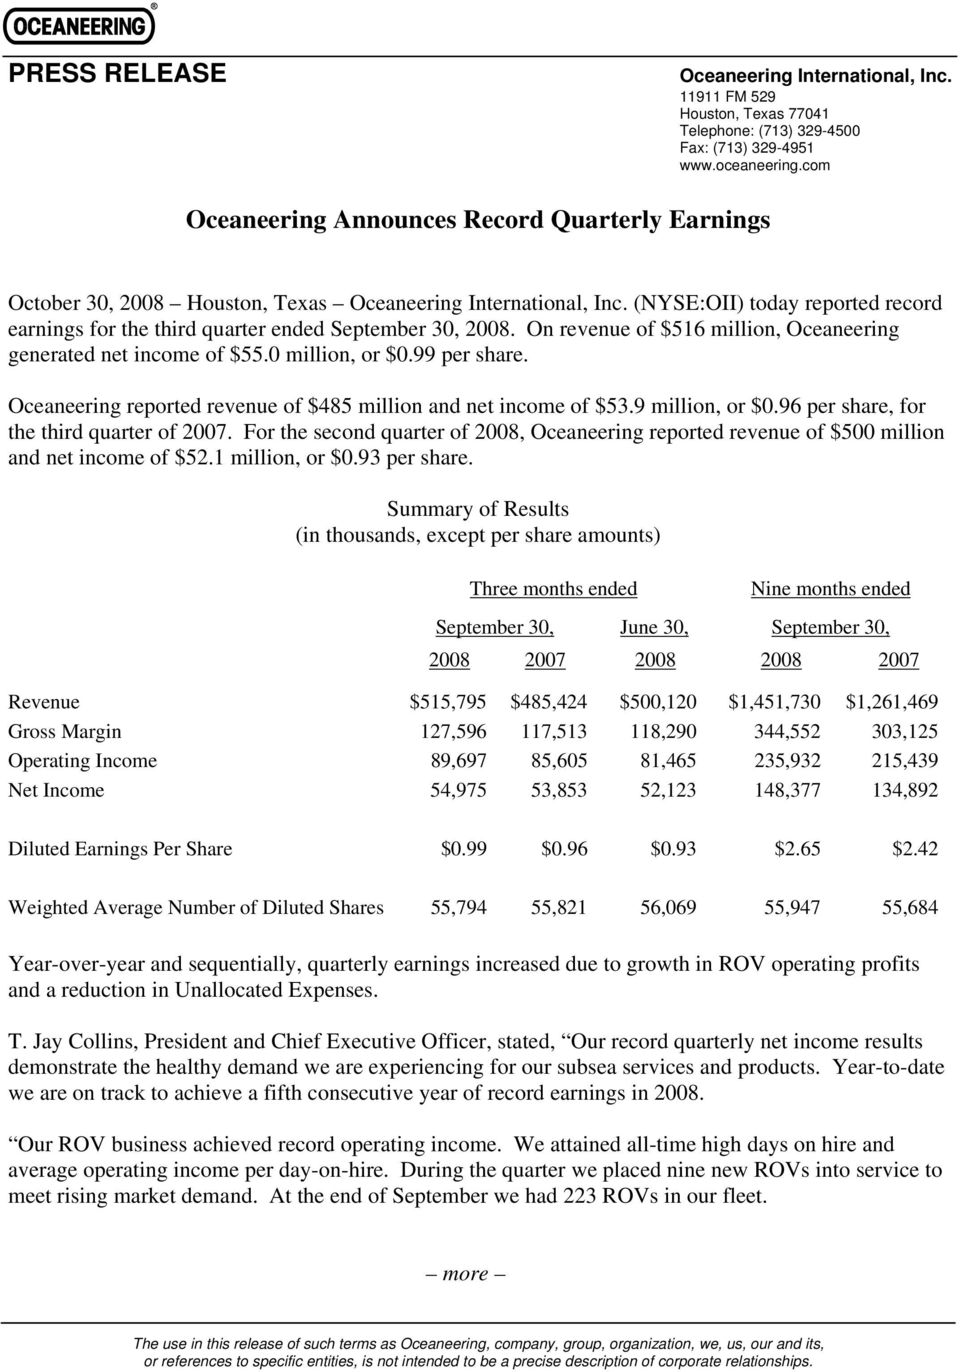 (NYSE:OII) today reported record earnings for the third quarter ended September 30, 2008. On revenue of $516 million, Oceaneering generated net income of $55.0 million, or $0.99 per share.